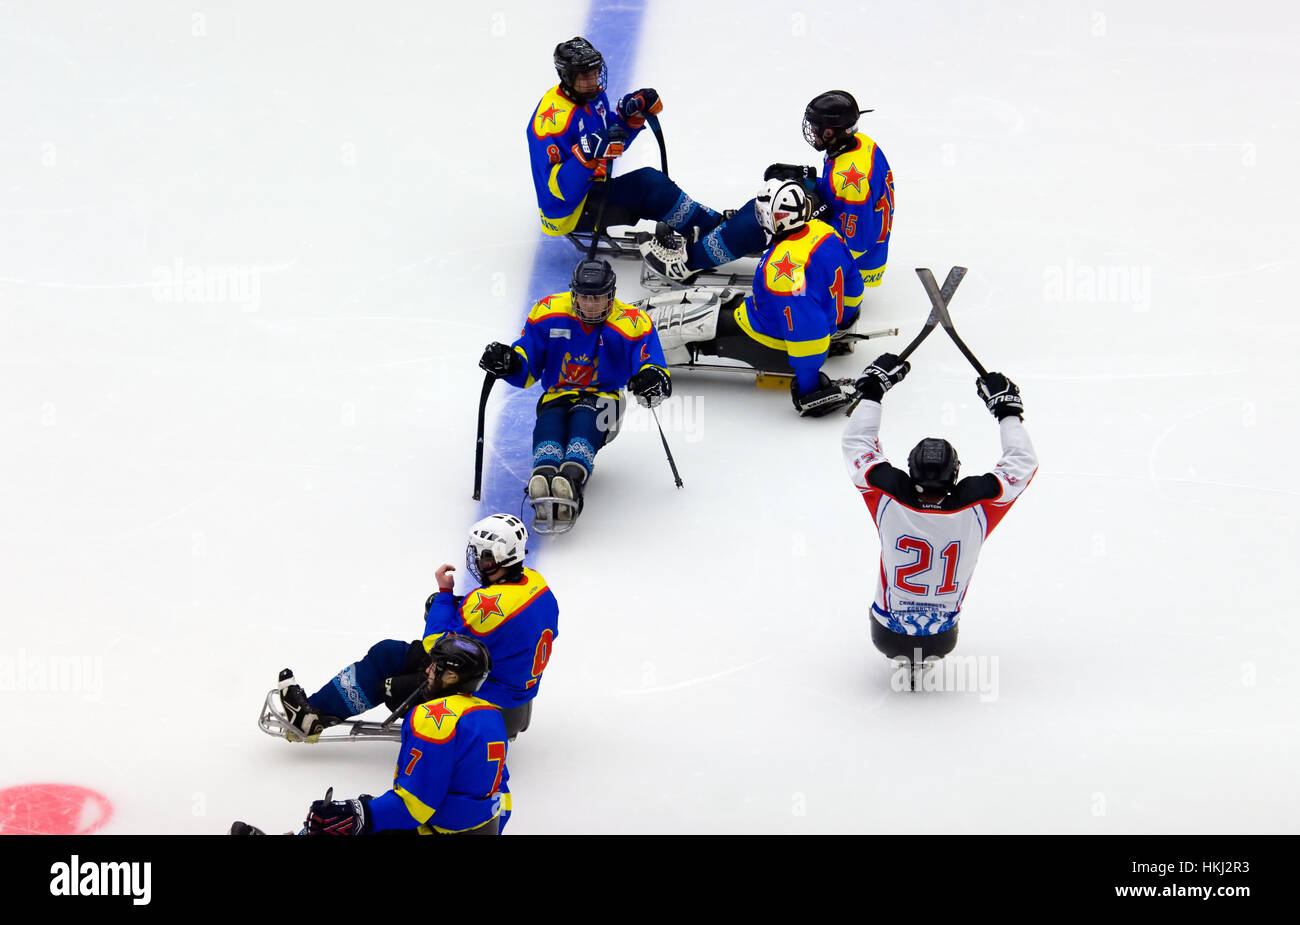 PODOLSK, RUSSIA - JANUARY 14, 2017: Unidentified players of Ladoga (blue) and Zvezda (white)  team of Sledge hockey during game Vityaz vs AKBars on Russia KHL championship on January 14, 2017 Stock Photo